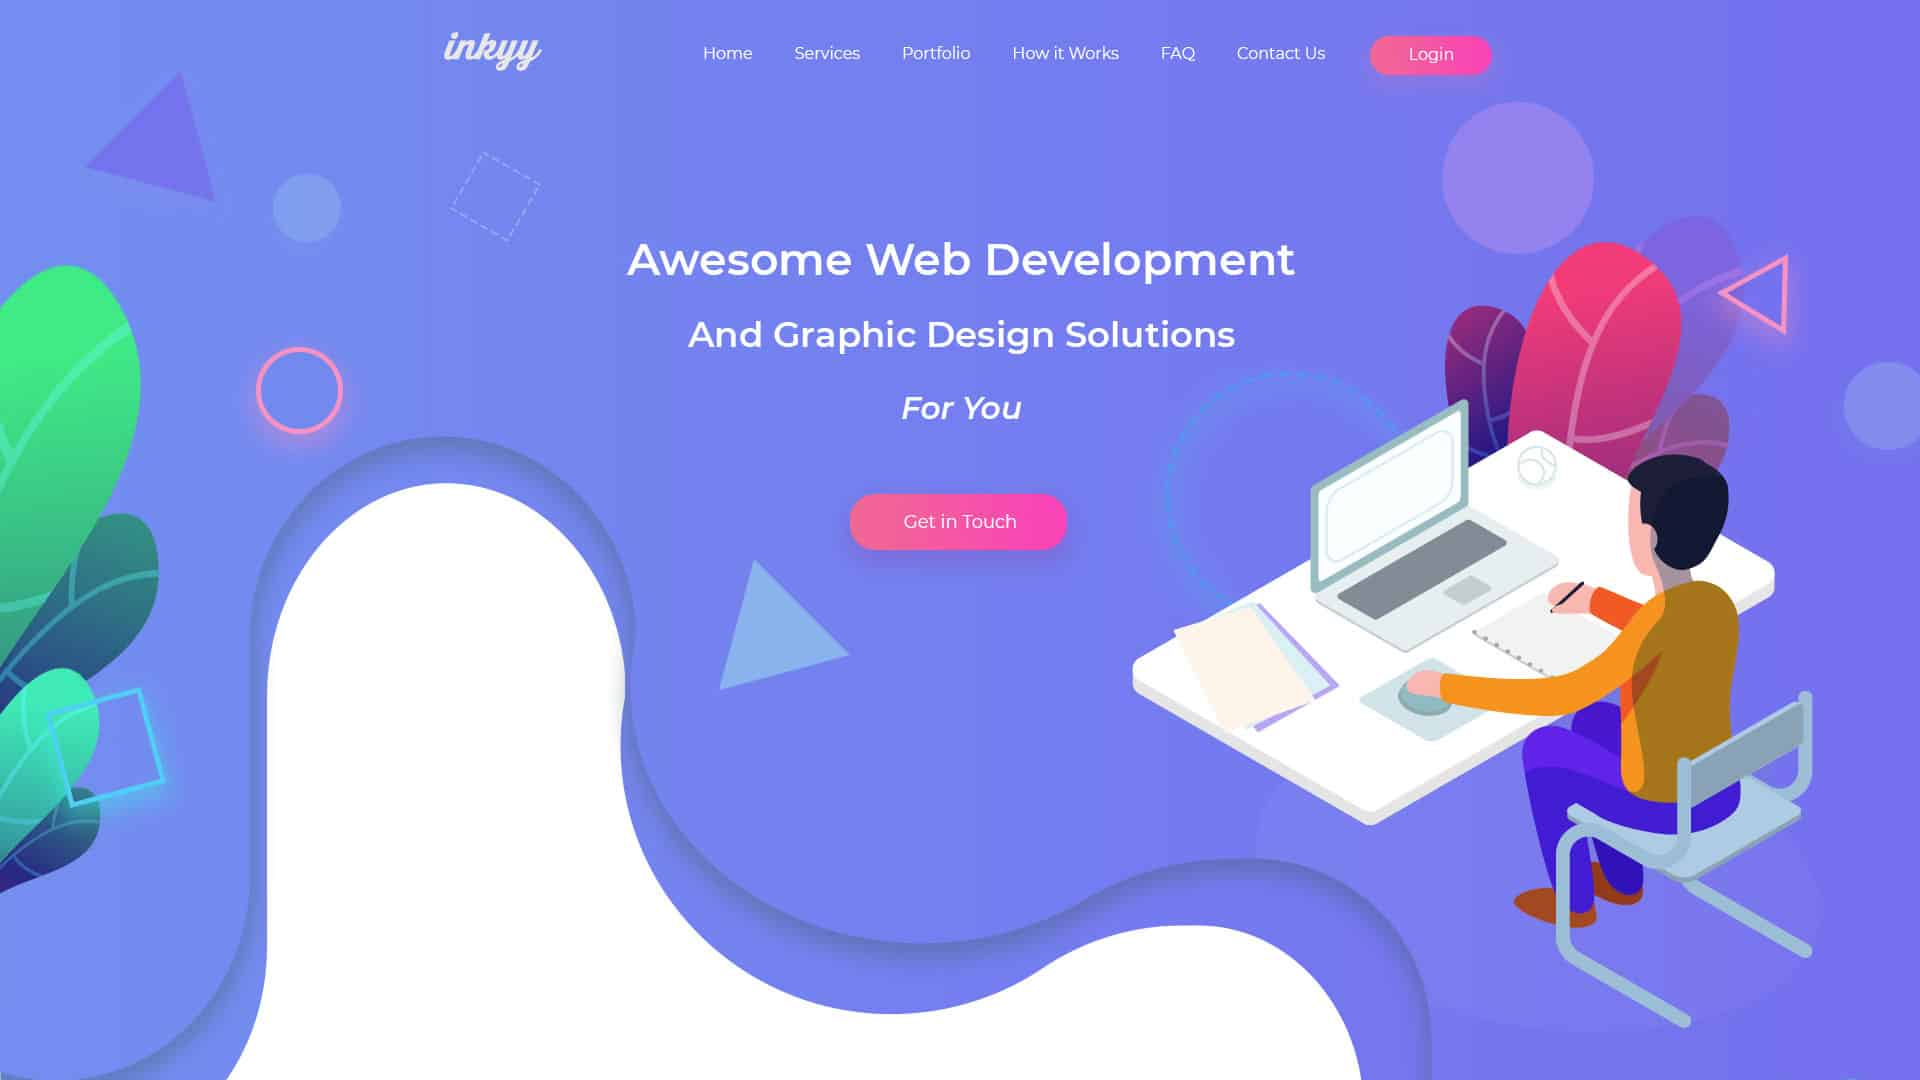 Natural Shapes Web Design Trends